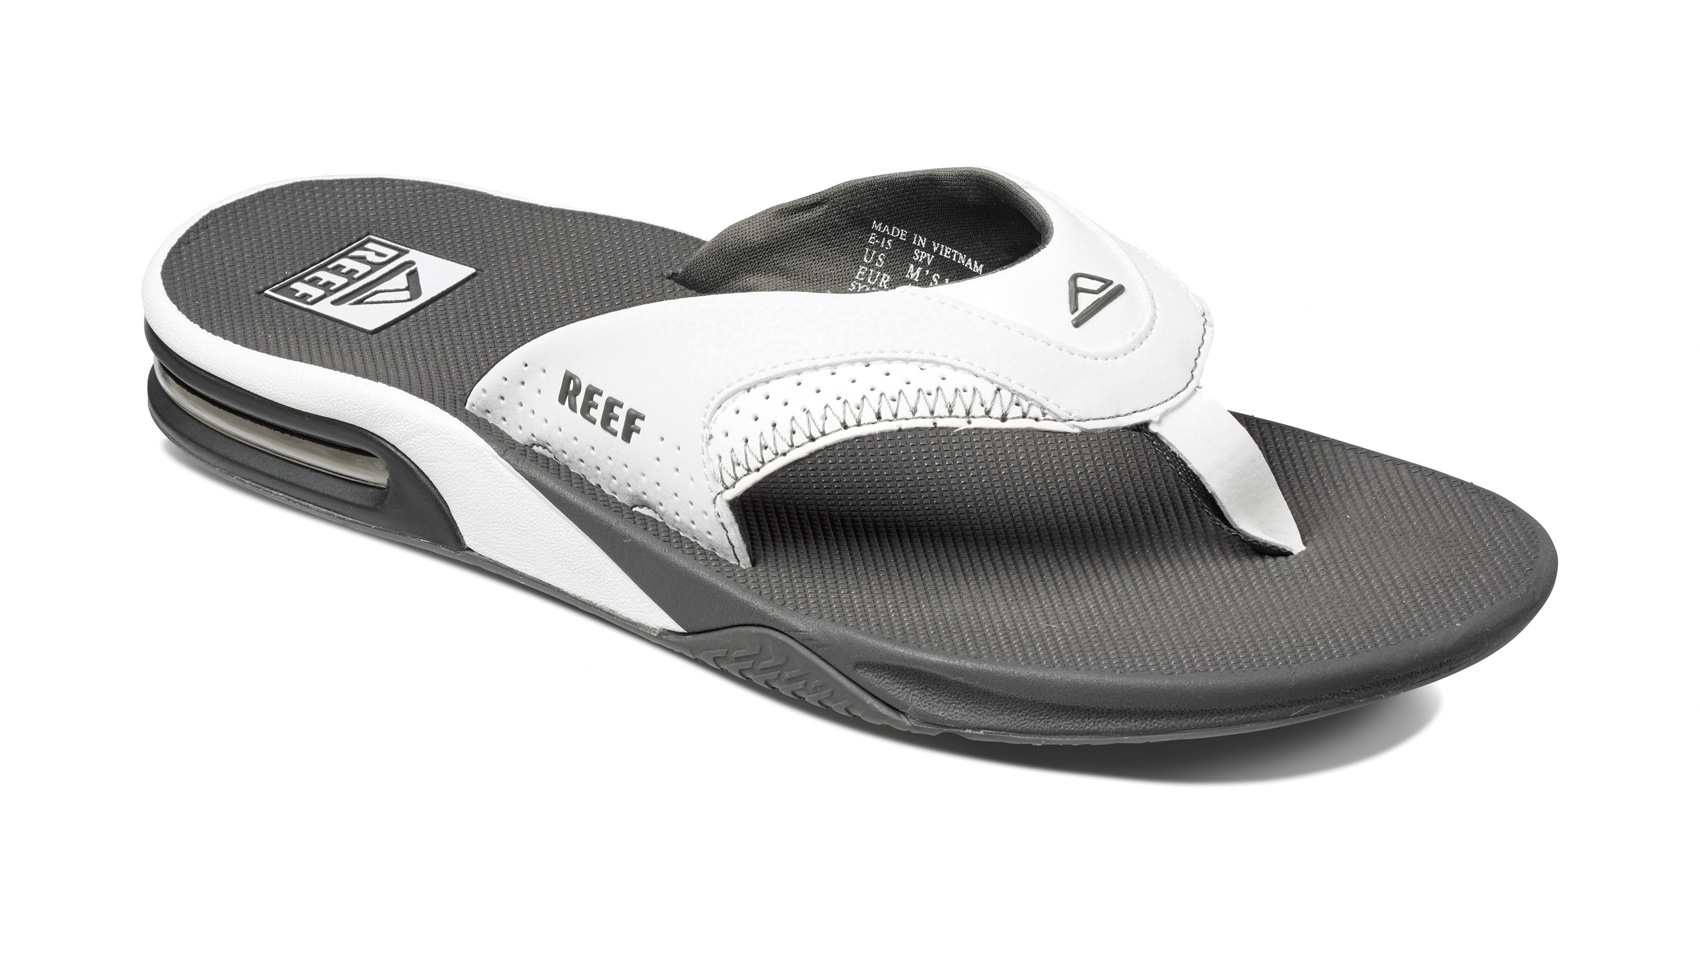 c047472dec37 2017 Reef Fanning Bottle Opener Flip Flops Grey   White R2026 UK Size 12.  About this product. Picture 1 of 7  Picture 2 of 7  Picture 3 of 7 ...